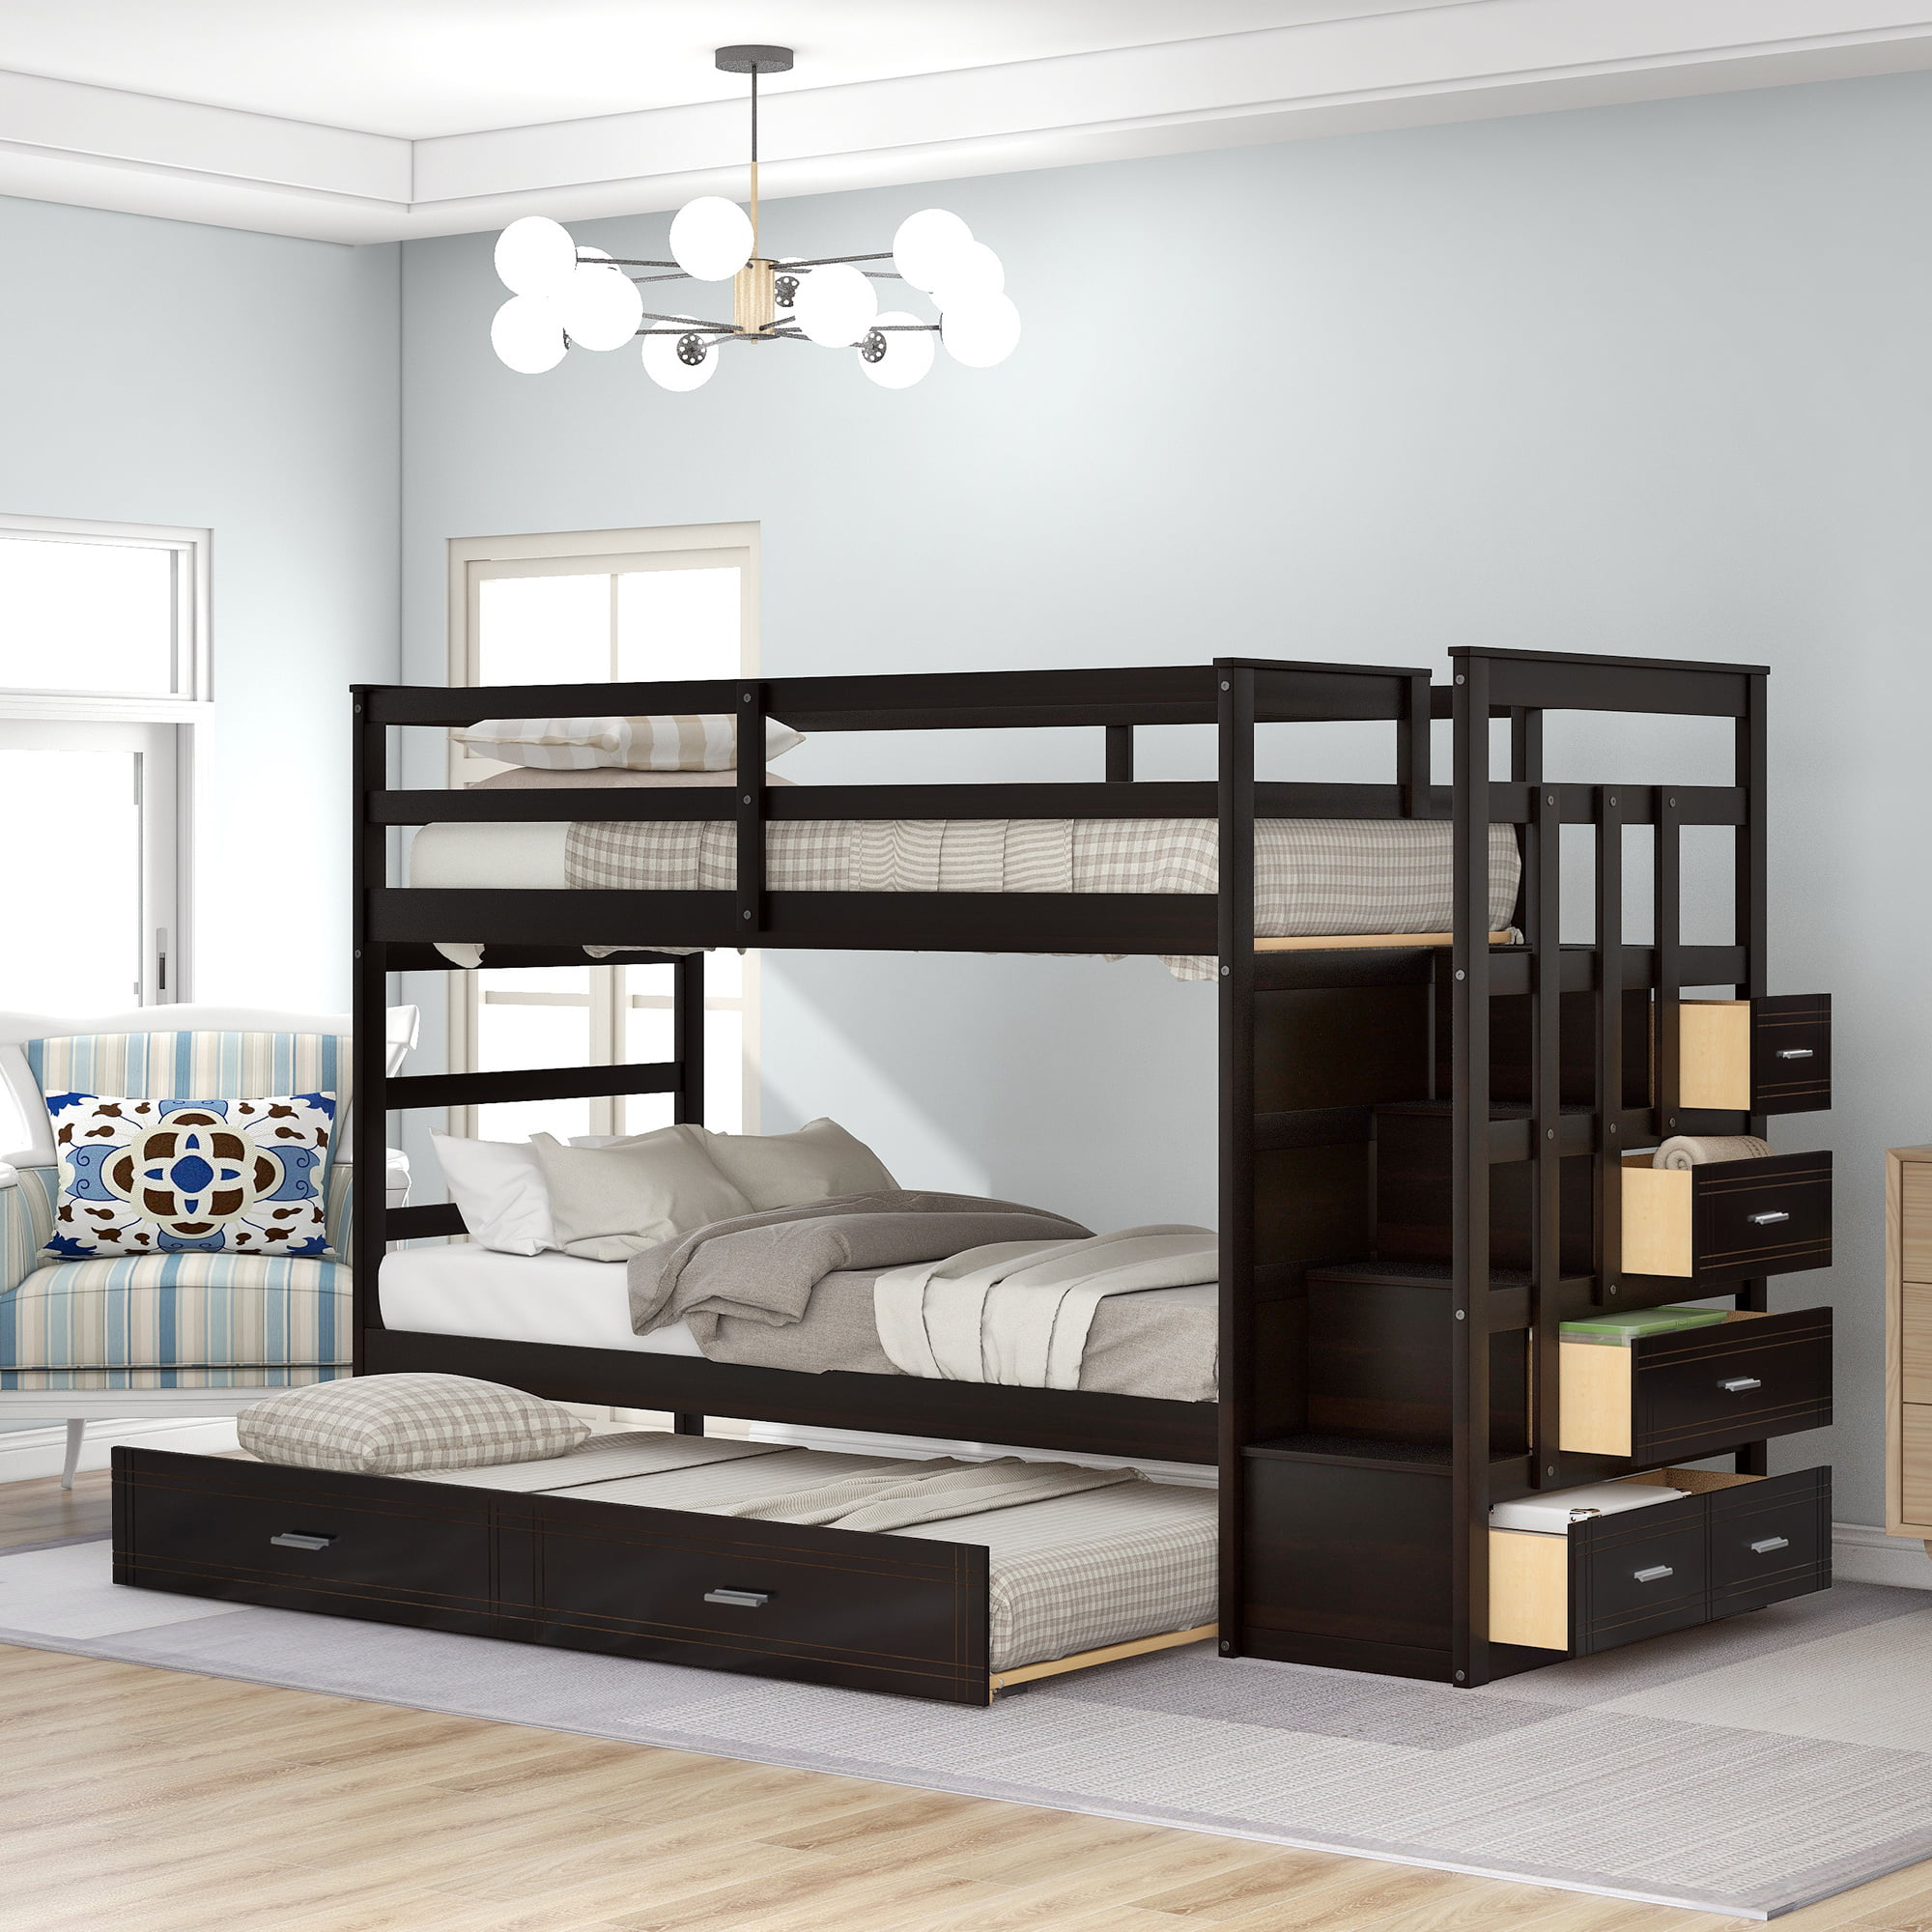 Wood Bunk Bed For Kids Twin Over Twin Bunk Bed Frame With Trundle And Staircase Multiple Colors Available Espresso Finish Walmart Com Walmart Com